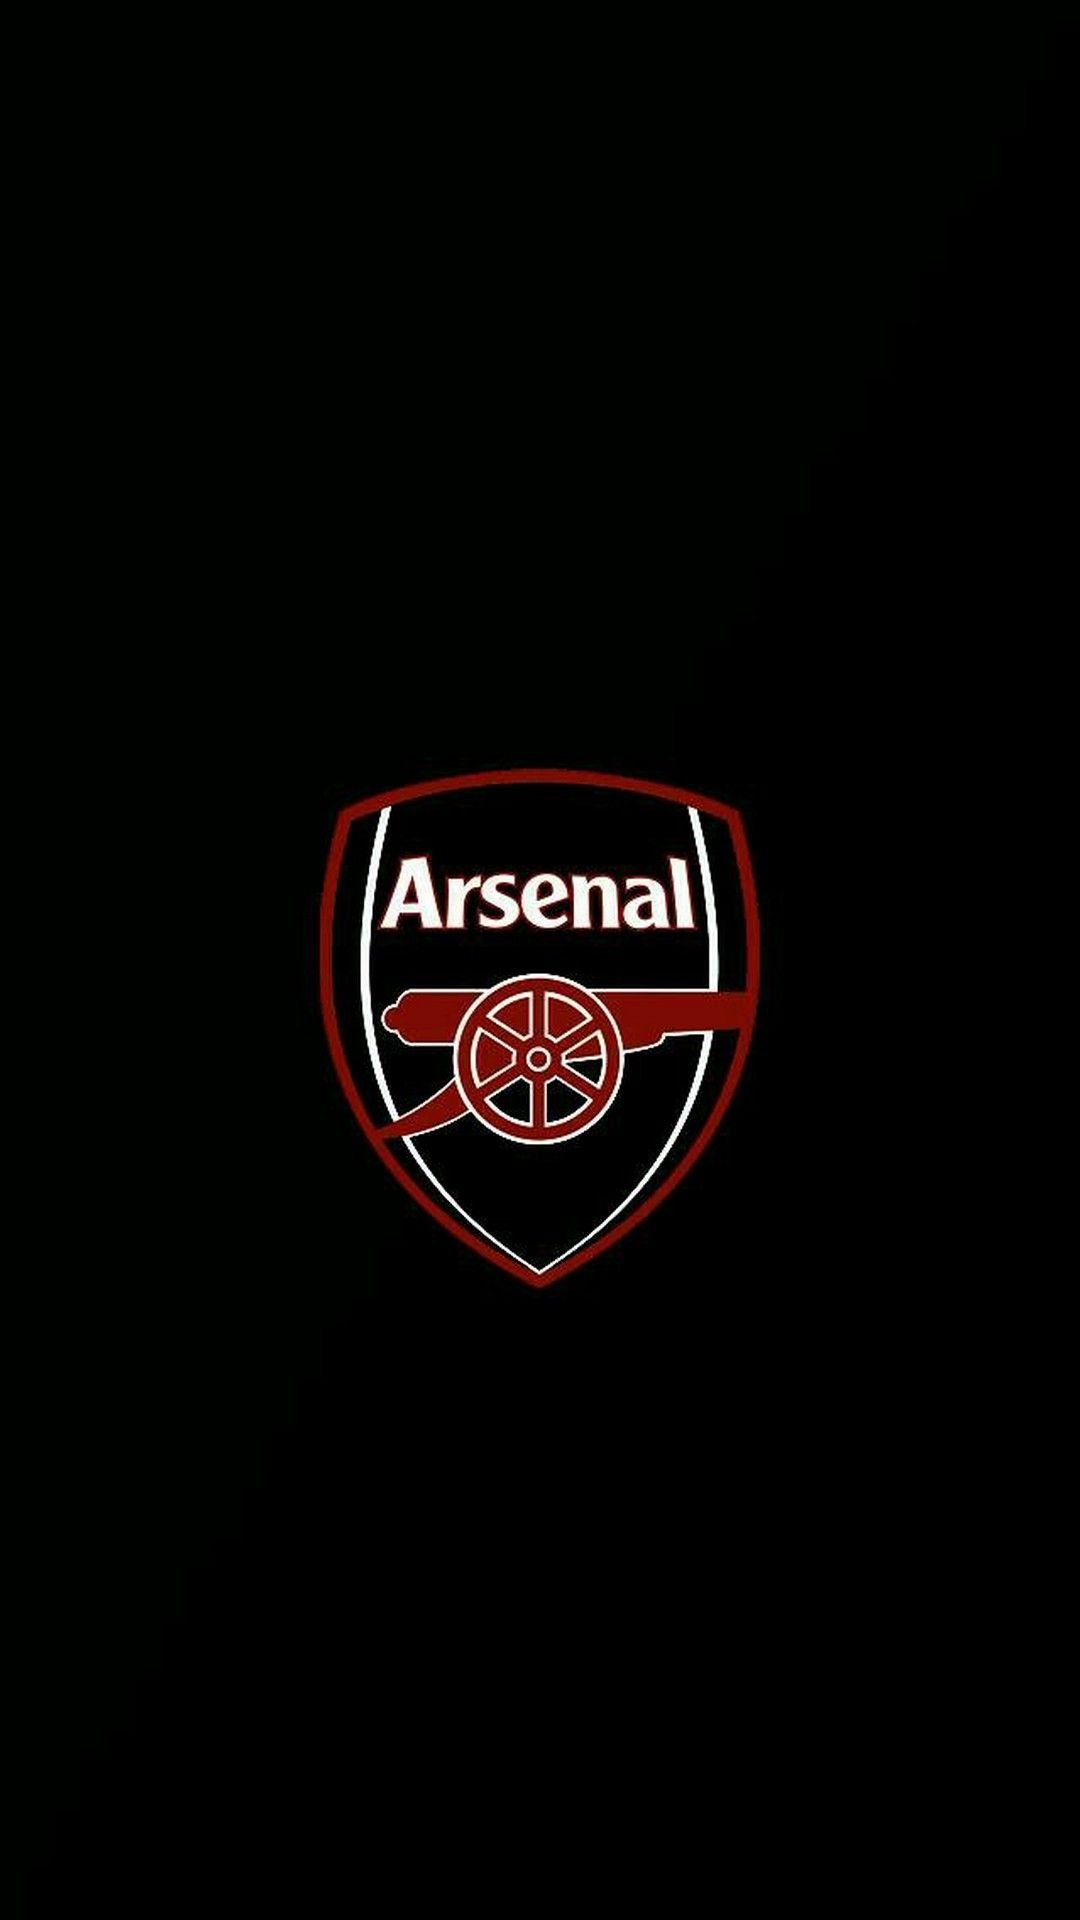 Arsenal Fc Wallpapers Top Free Arsenal Fc Backgrounds